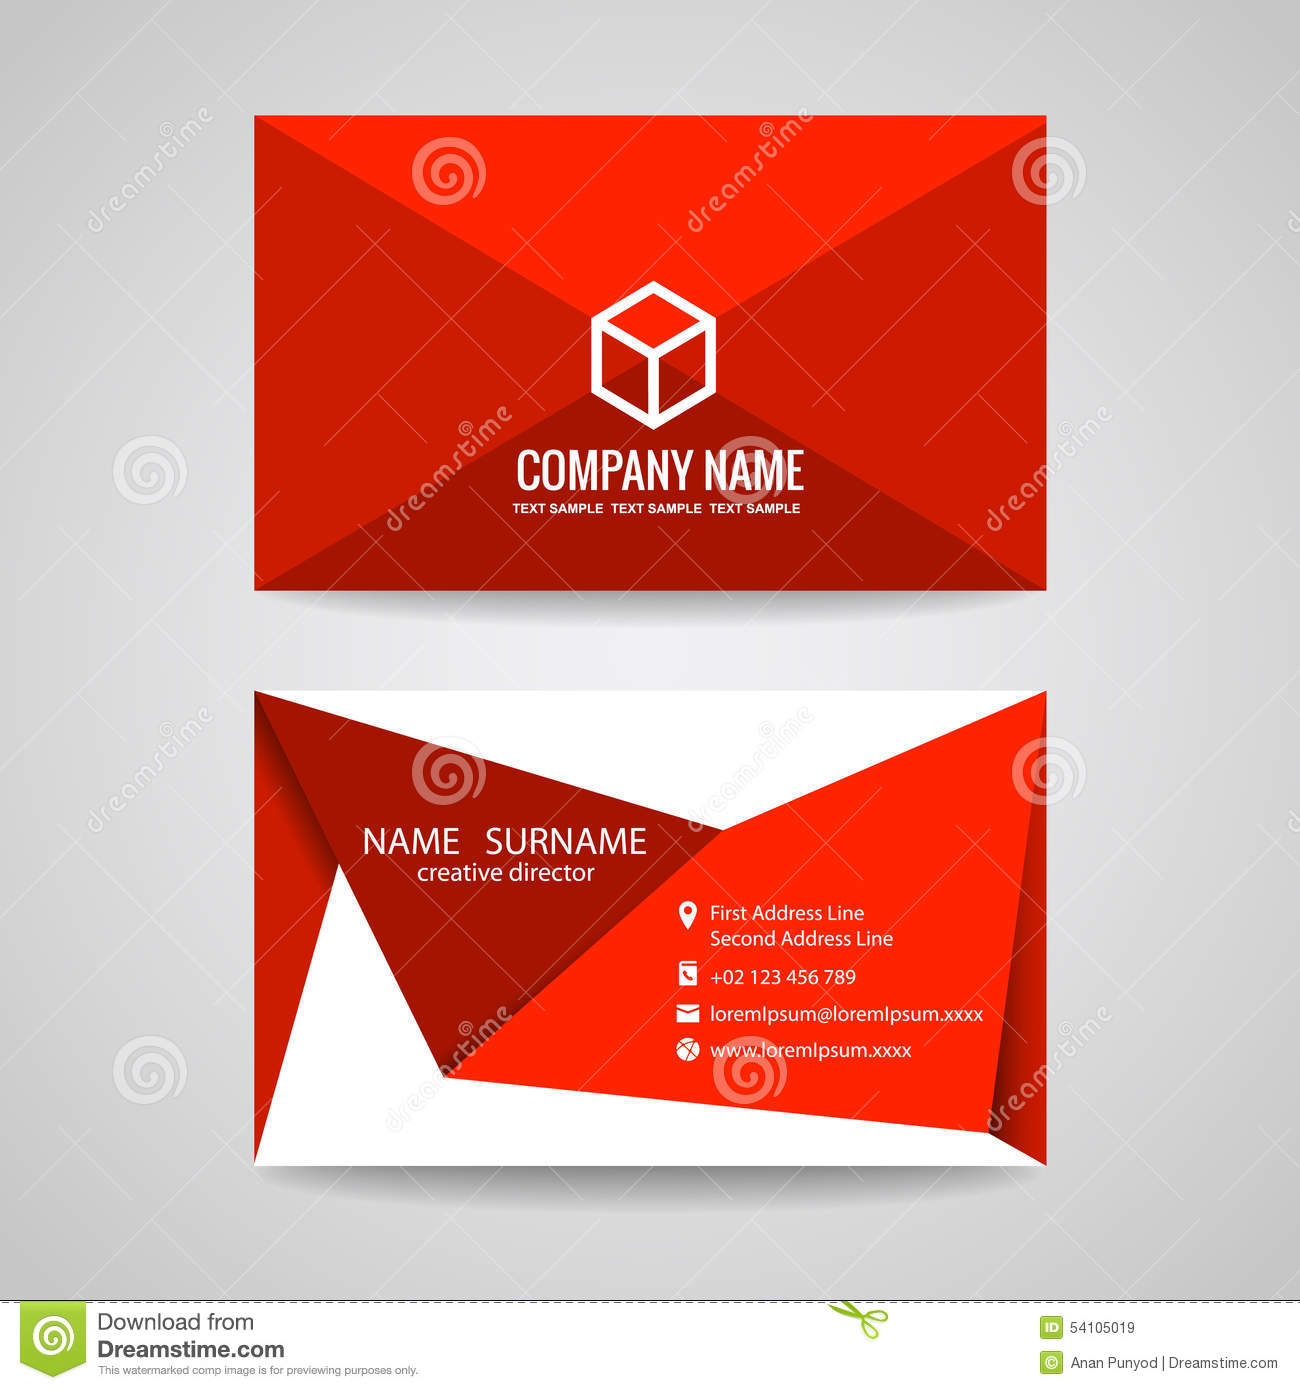 Business card vector graphic design red triangle fold and box logo business card vector graphic design red triangle fold and box logo reheart Images